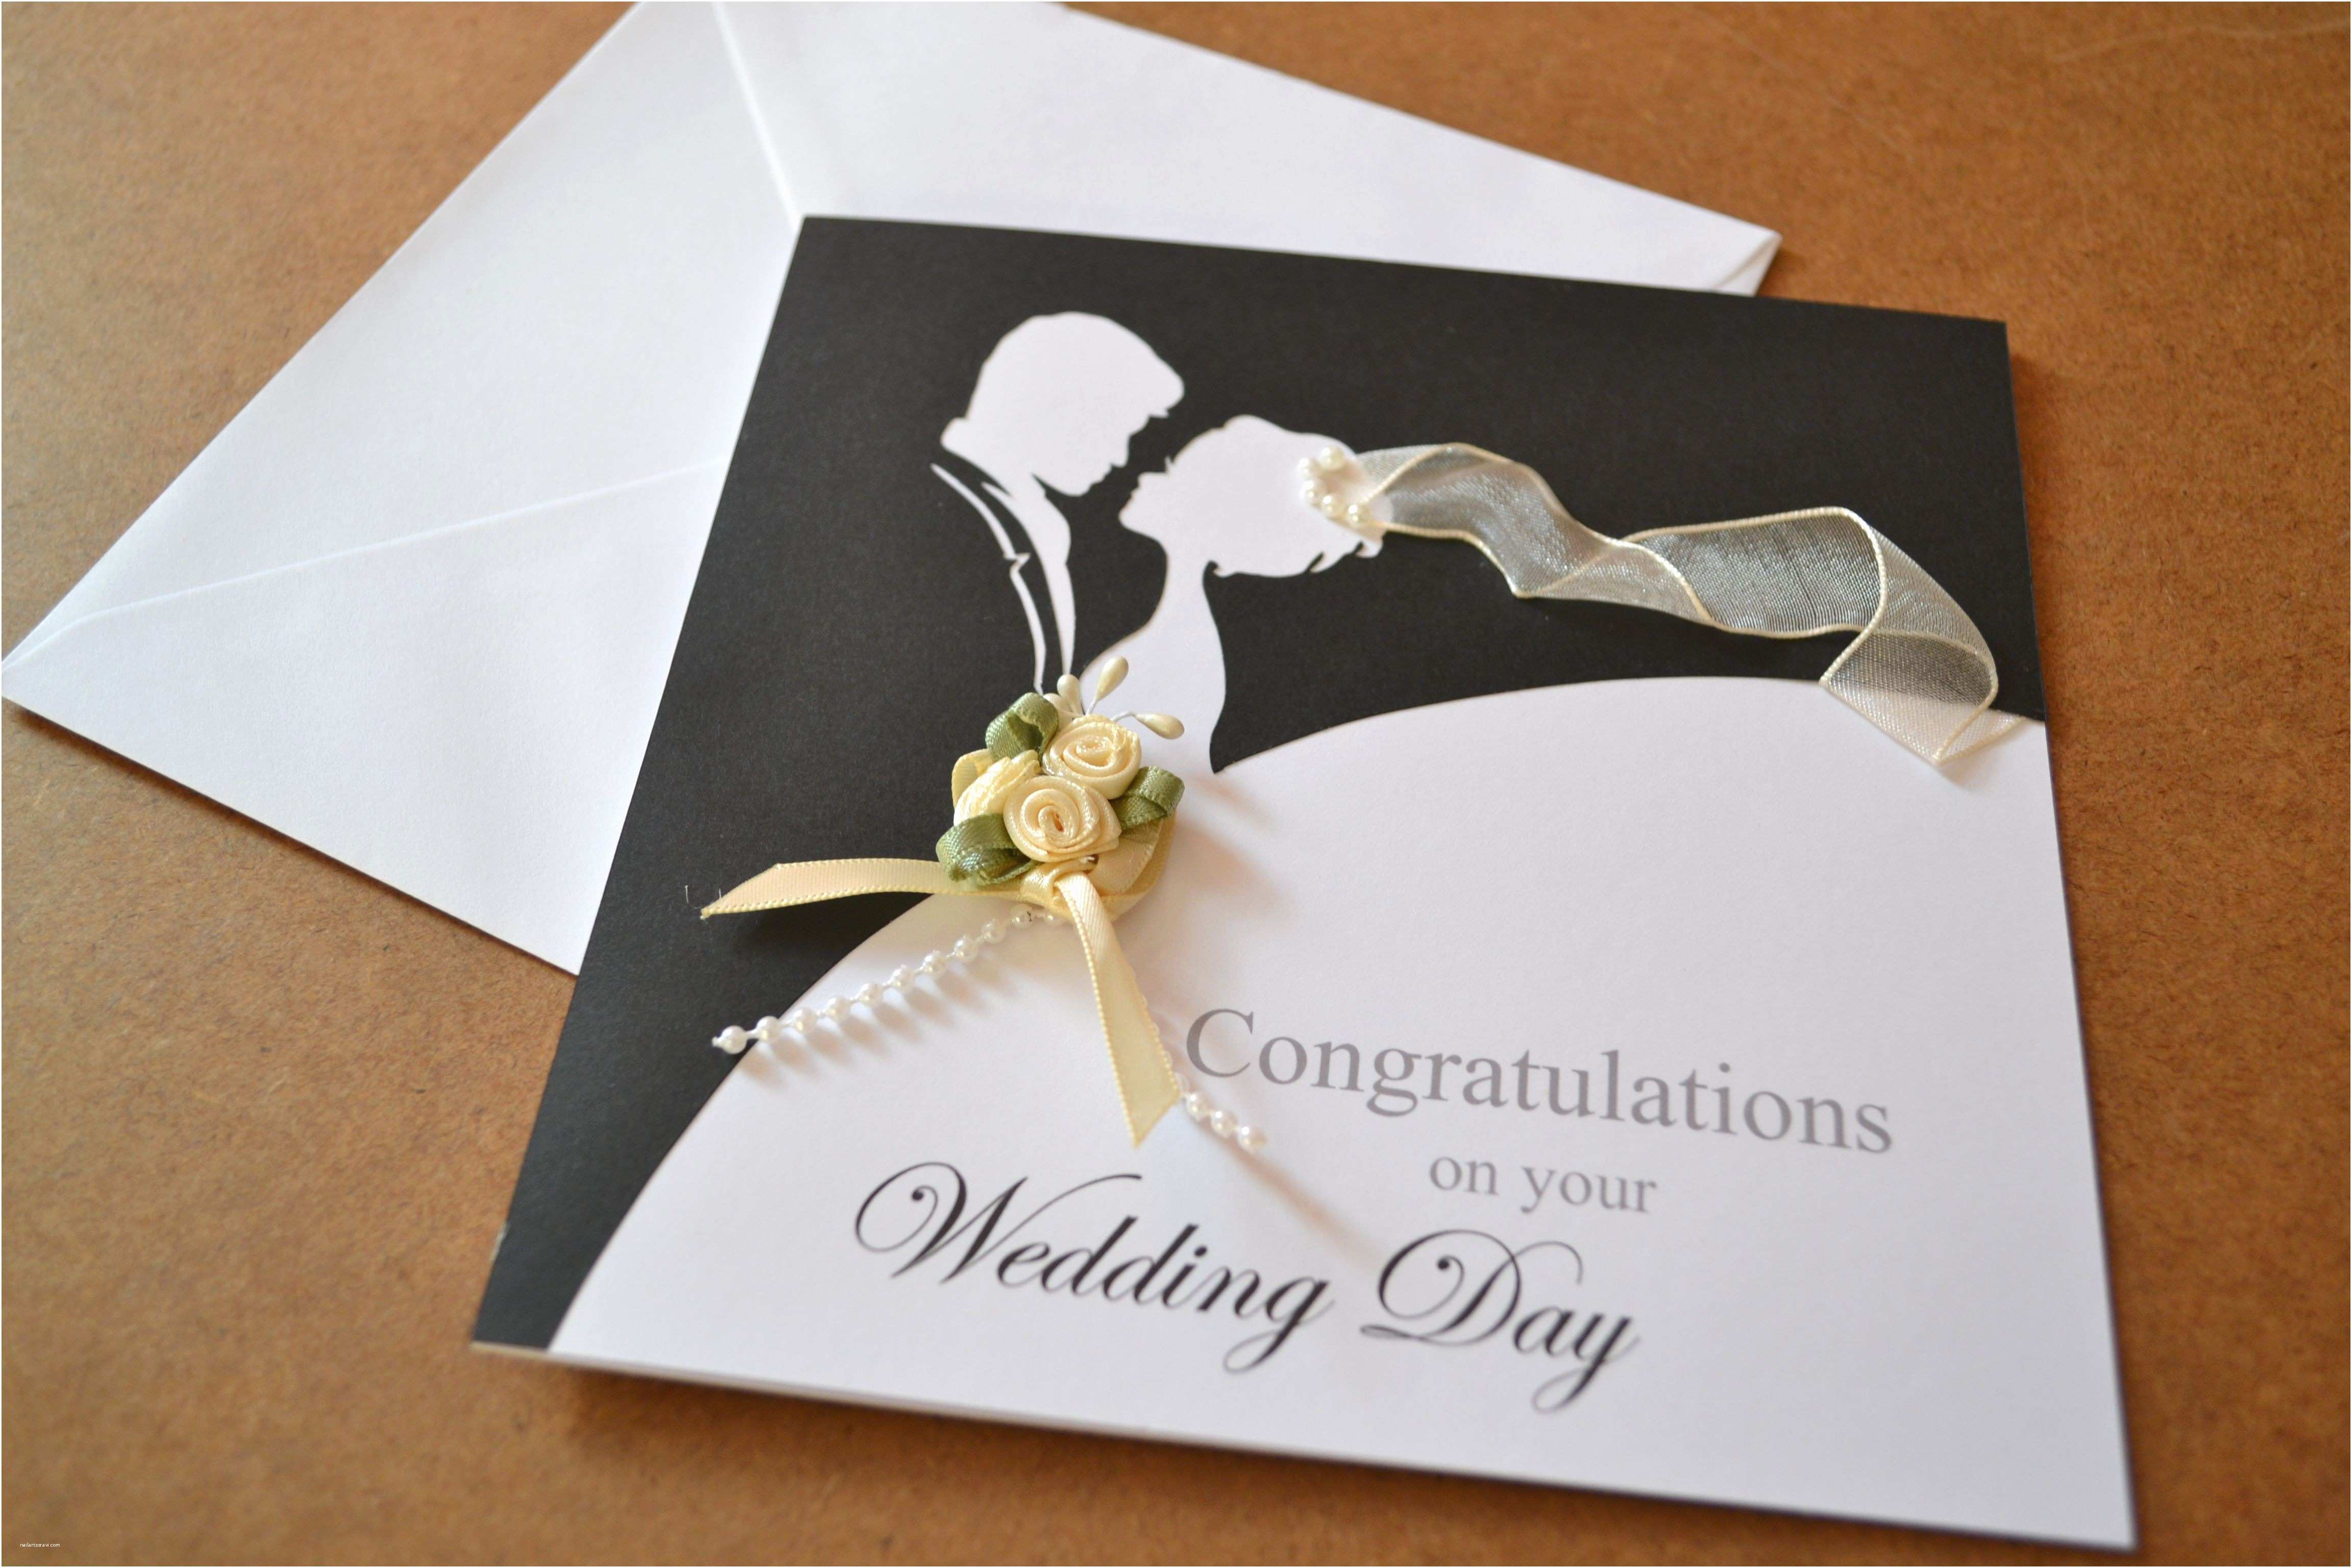 Create Your Own Wedding Invitations Free Save Wedding Invitation Design Your Own Free